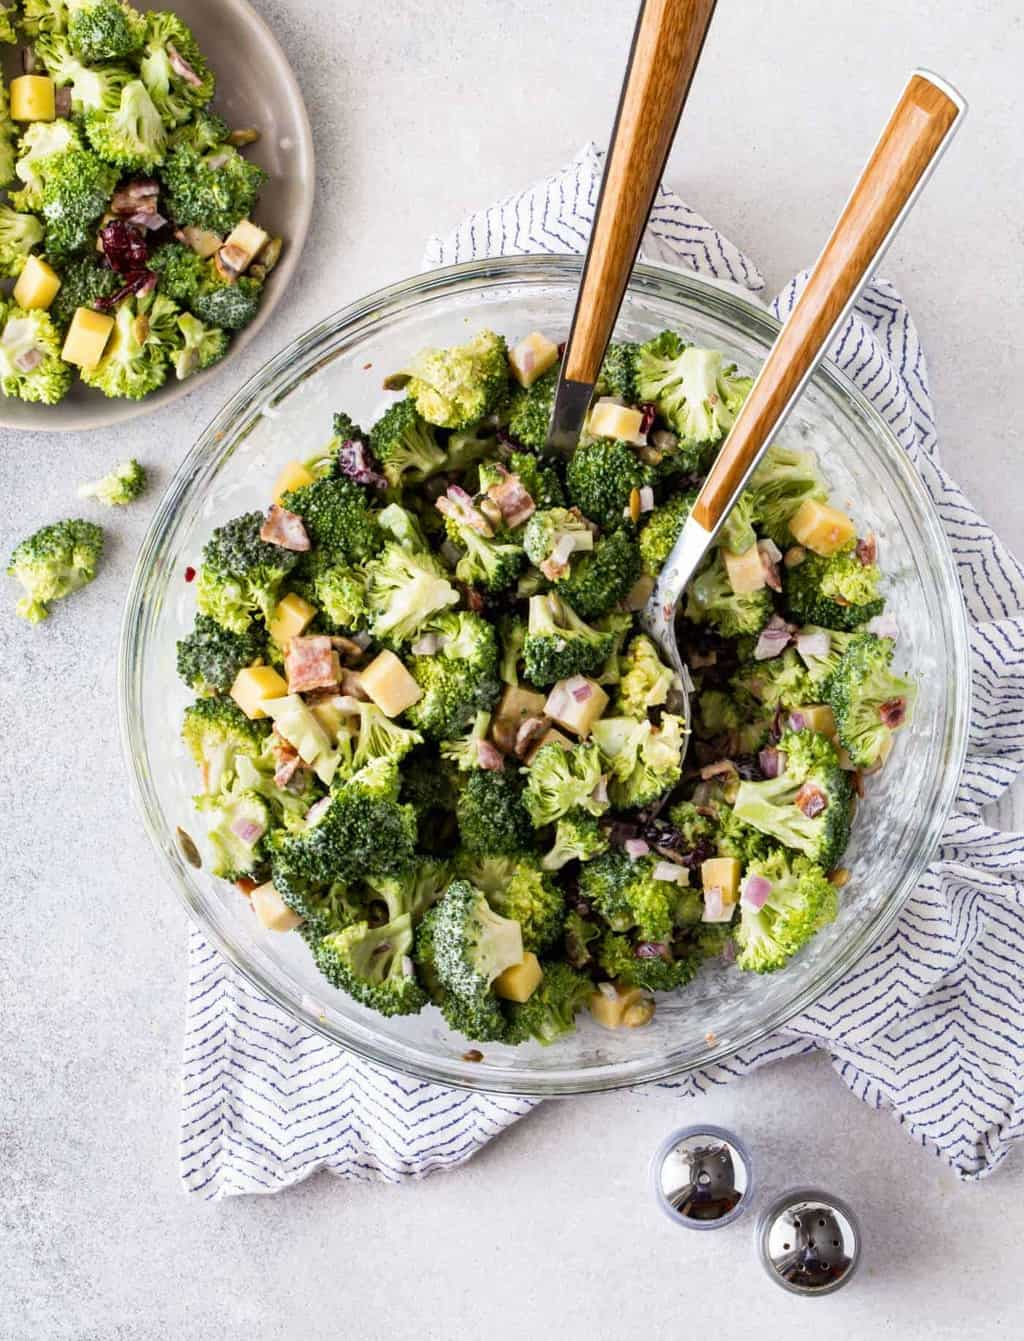 Easy Broccoli Salad With Bacon And Cheese Garnish With Lemon